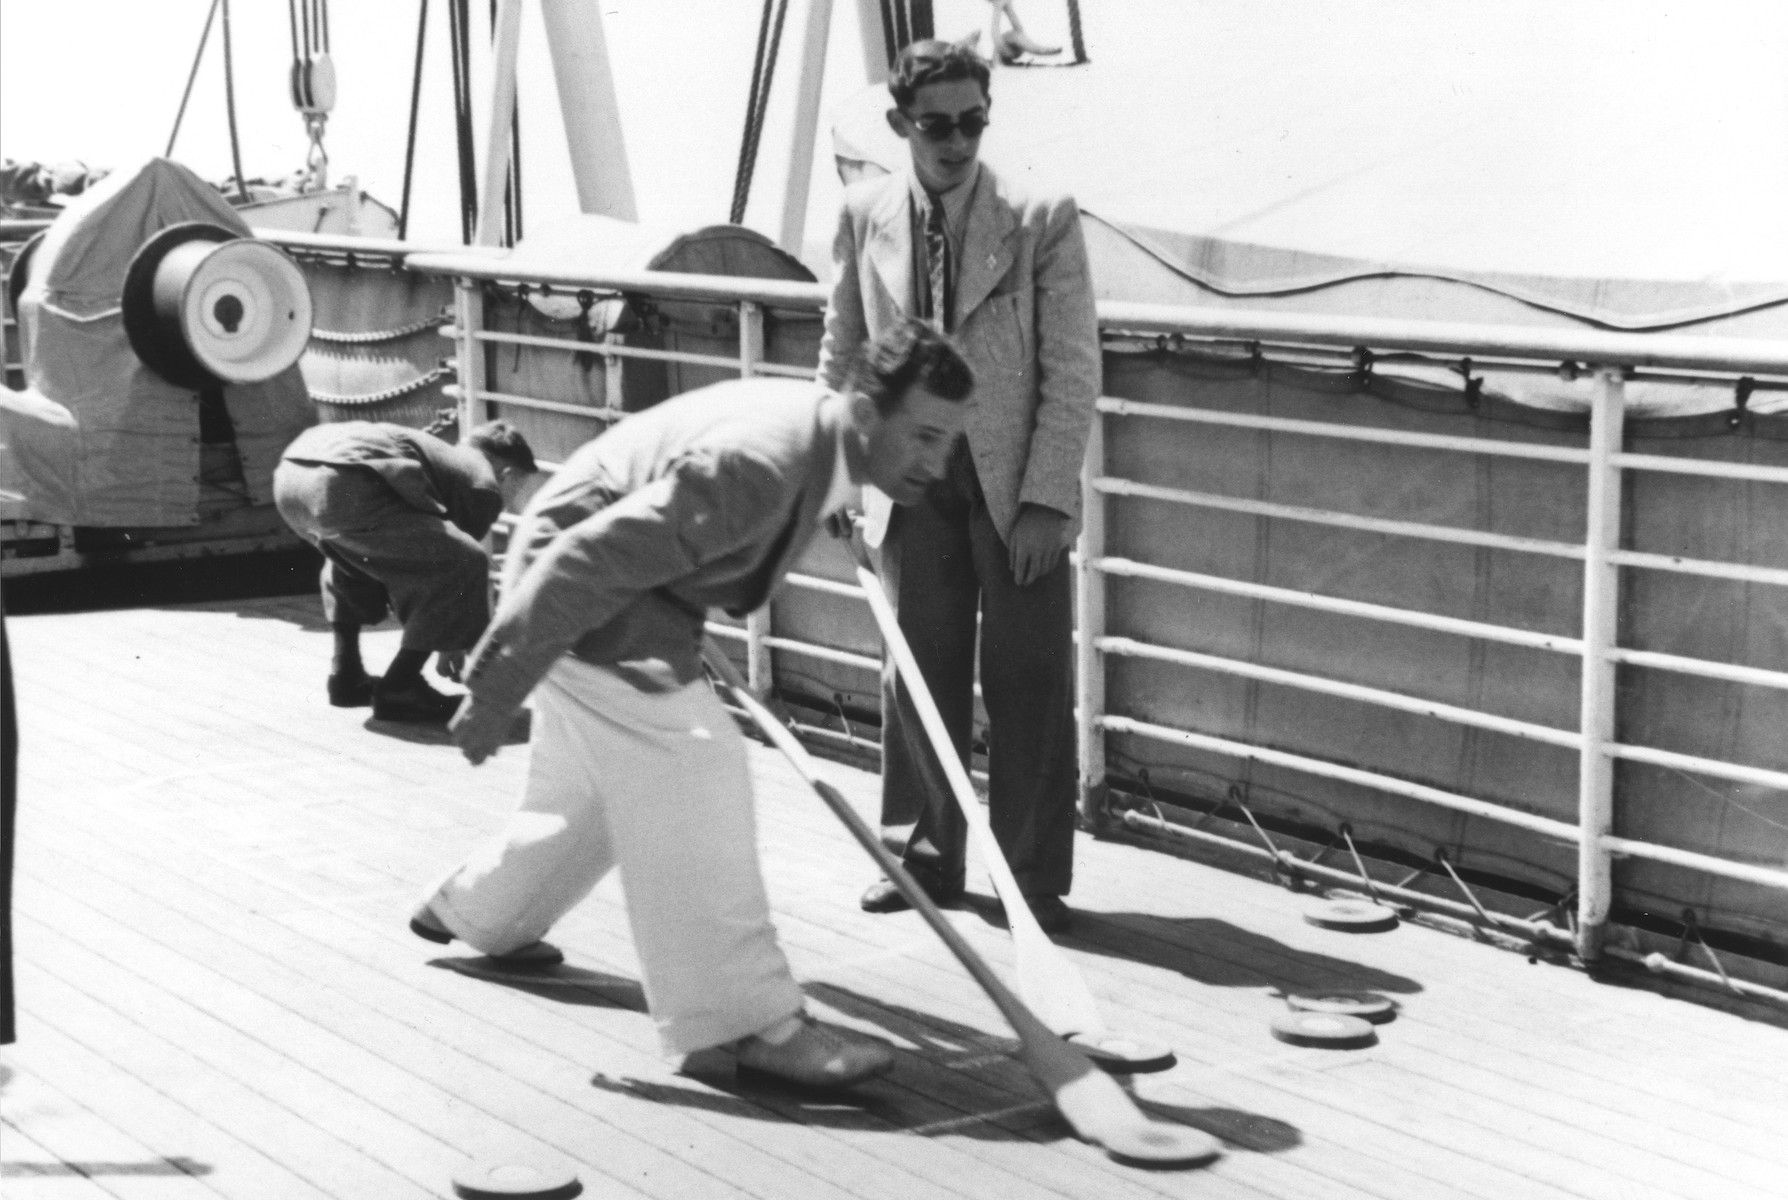 Werner Lenneberg (left) and Fritz Buff (right) play shuffleboard on the deck of the MS St. Louis.